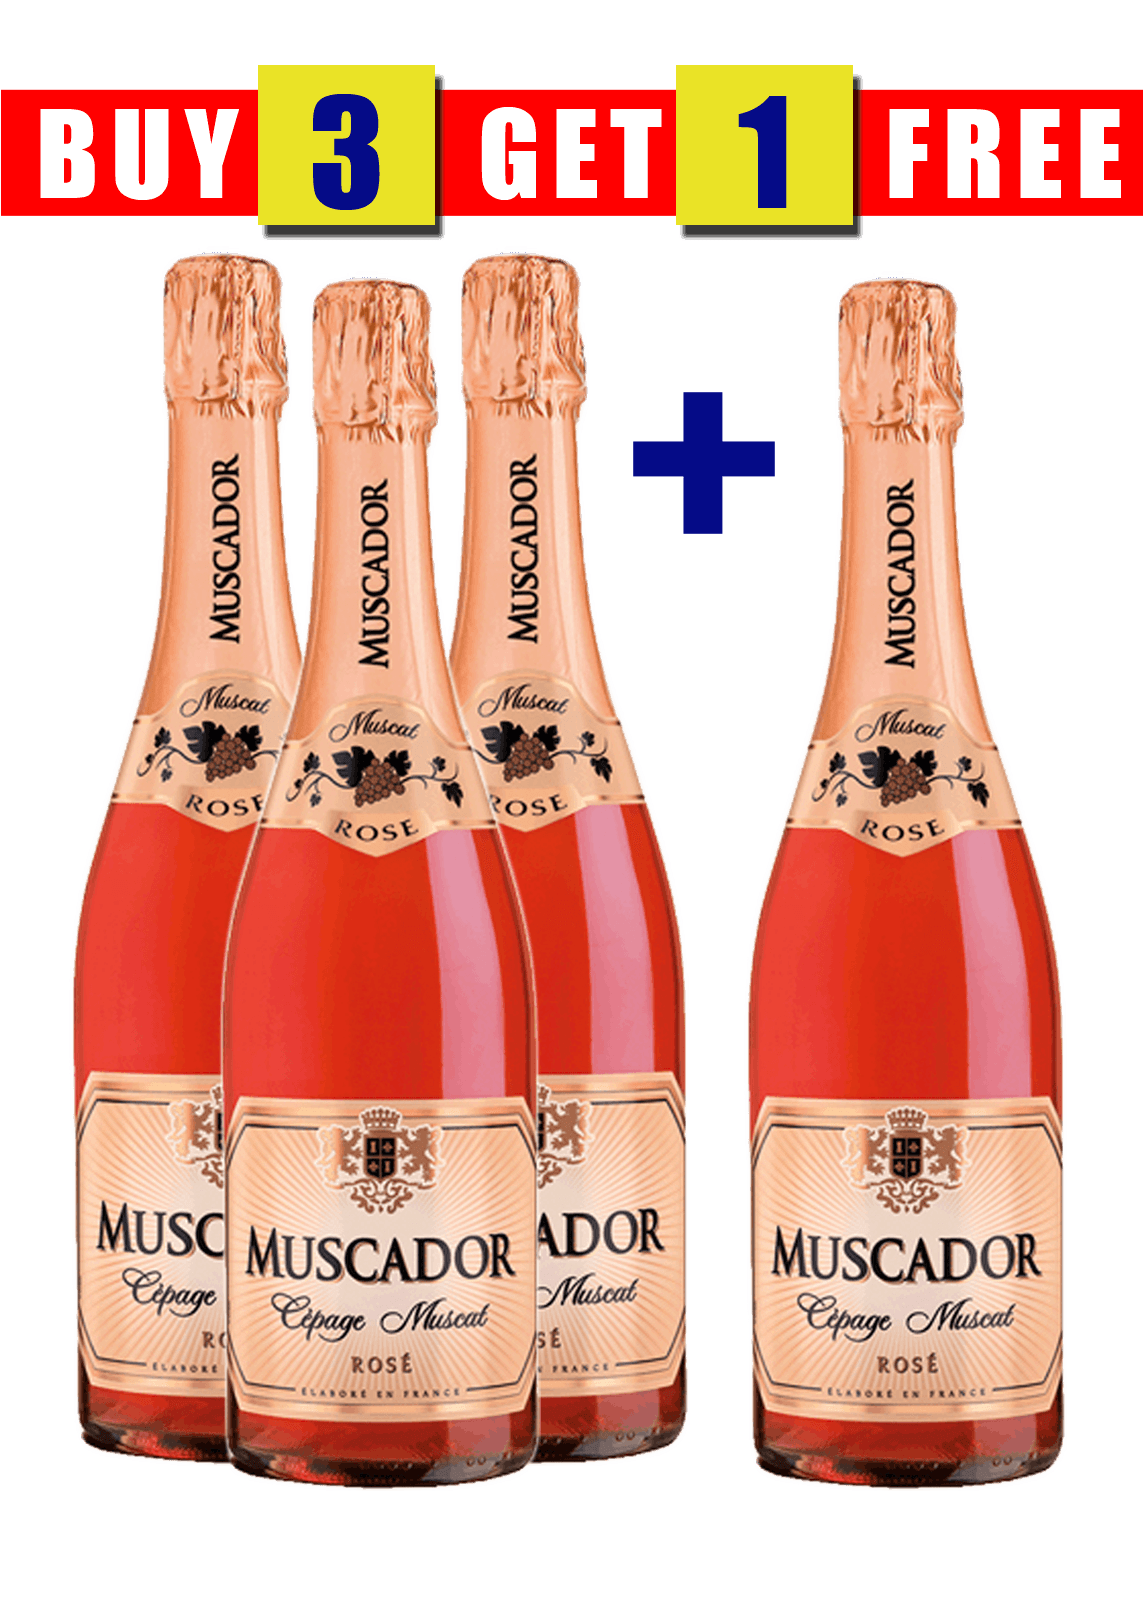 MUSCADOR SPARKLING ROSE 75CL (BUY 3 GET 1 FREE)